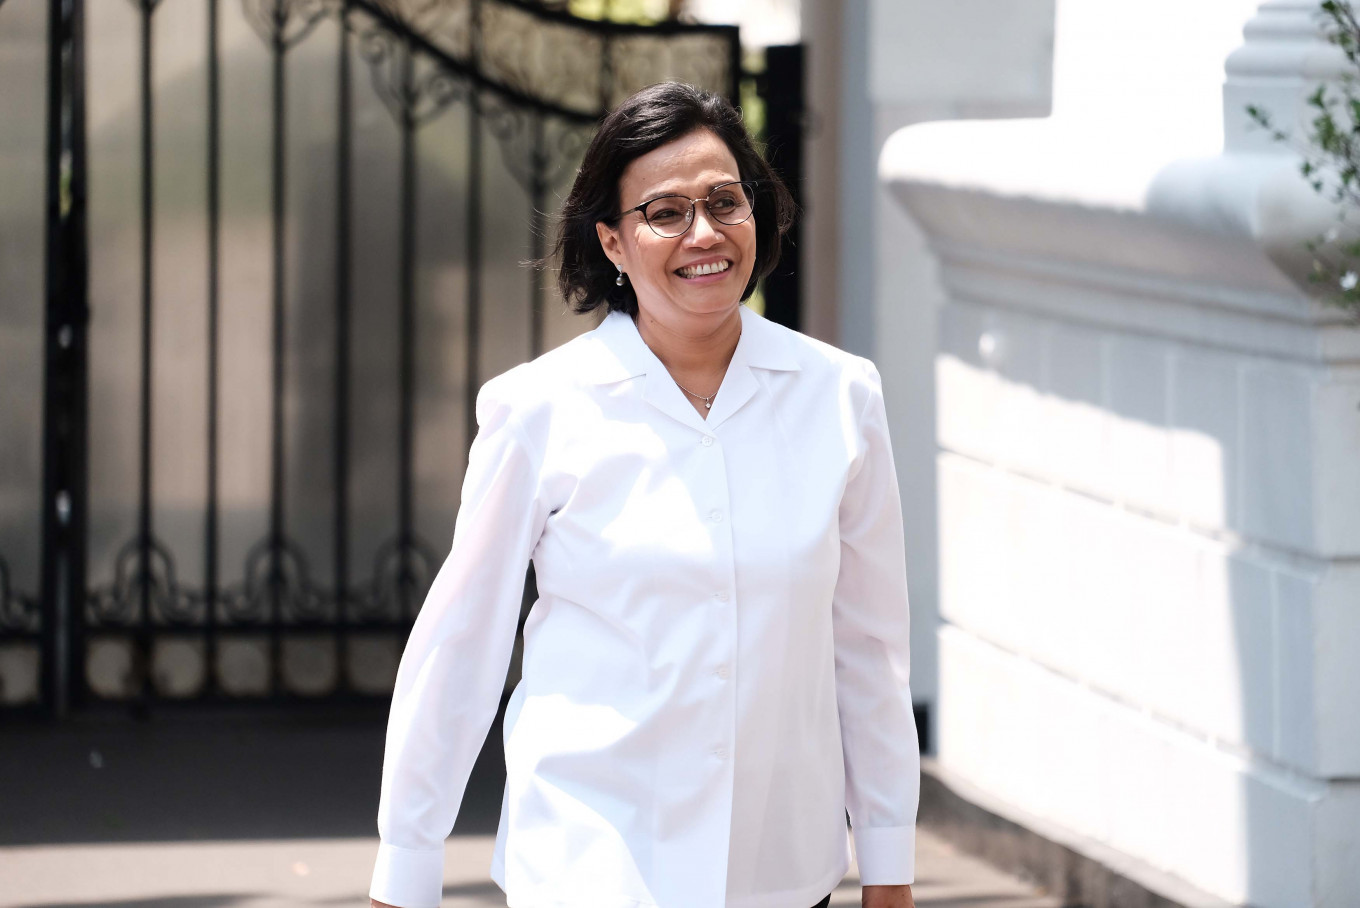 Jokowi's new Cabinet: Sri Mulyani keeps job as finance minister